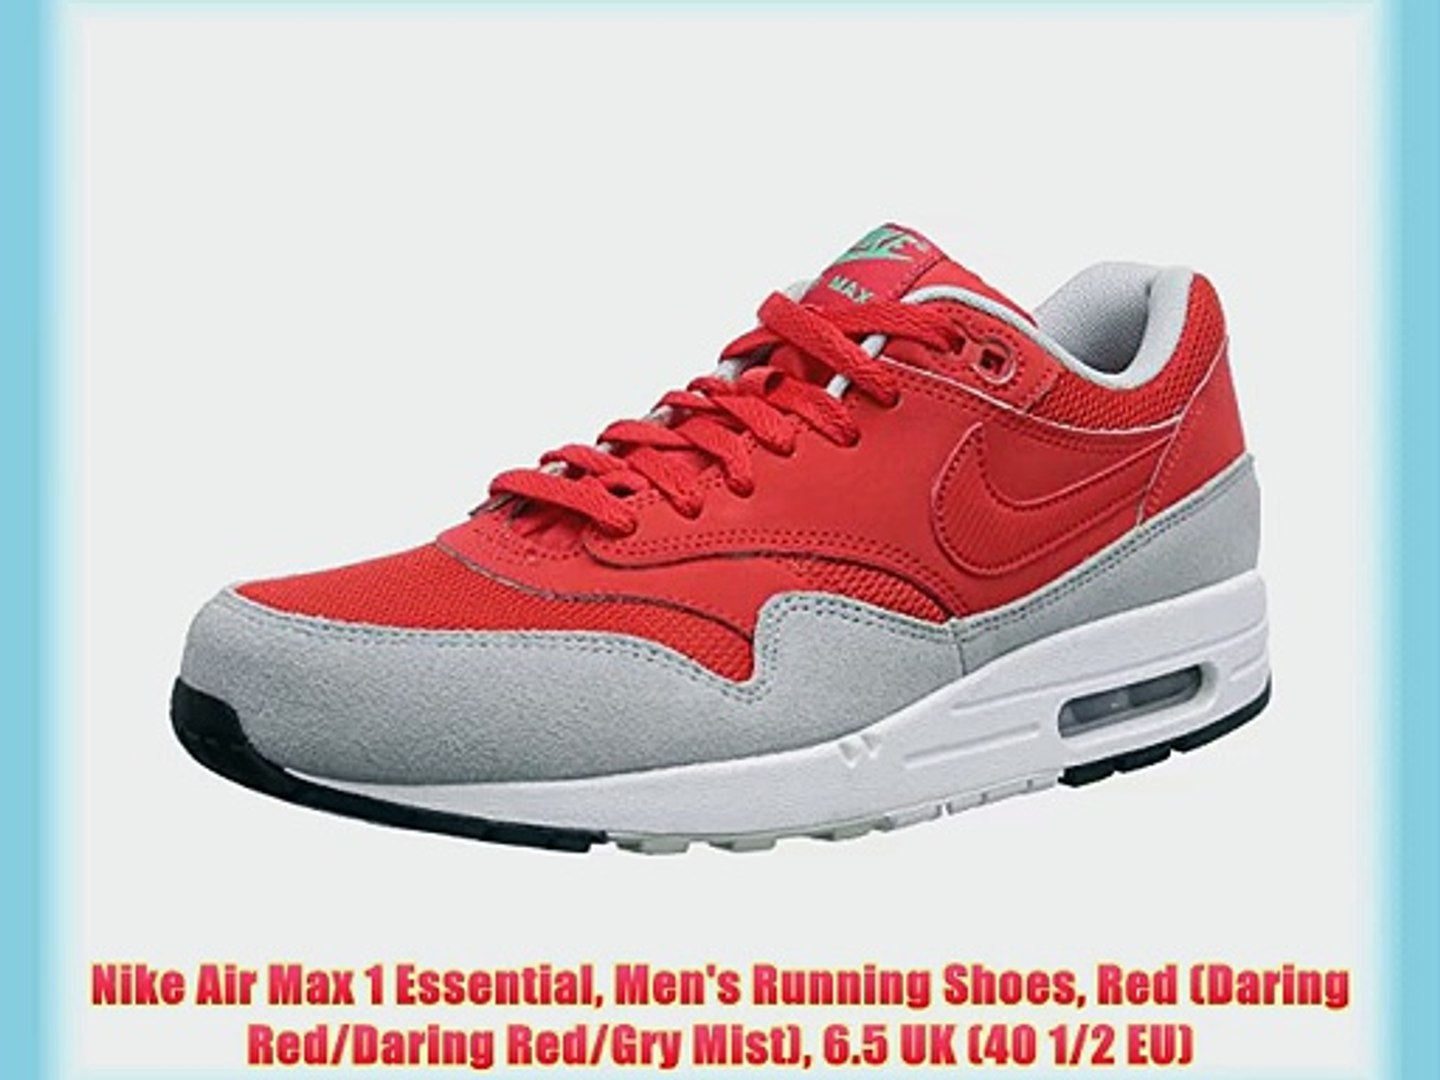 Nike Air Max 1 Essential Men's Running Shoes Red (Daring Red/Daring Red/Gry Mist) 6.5 UK (40